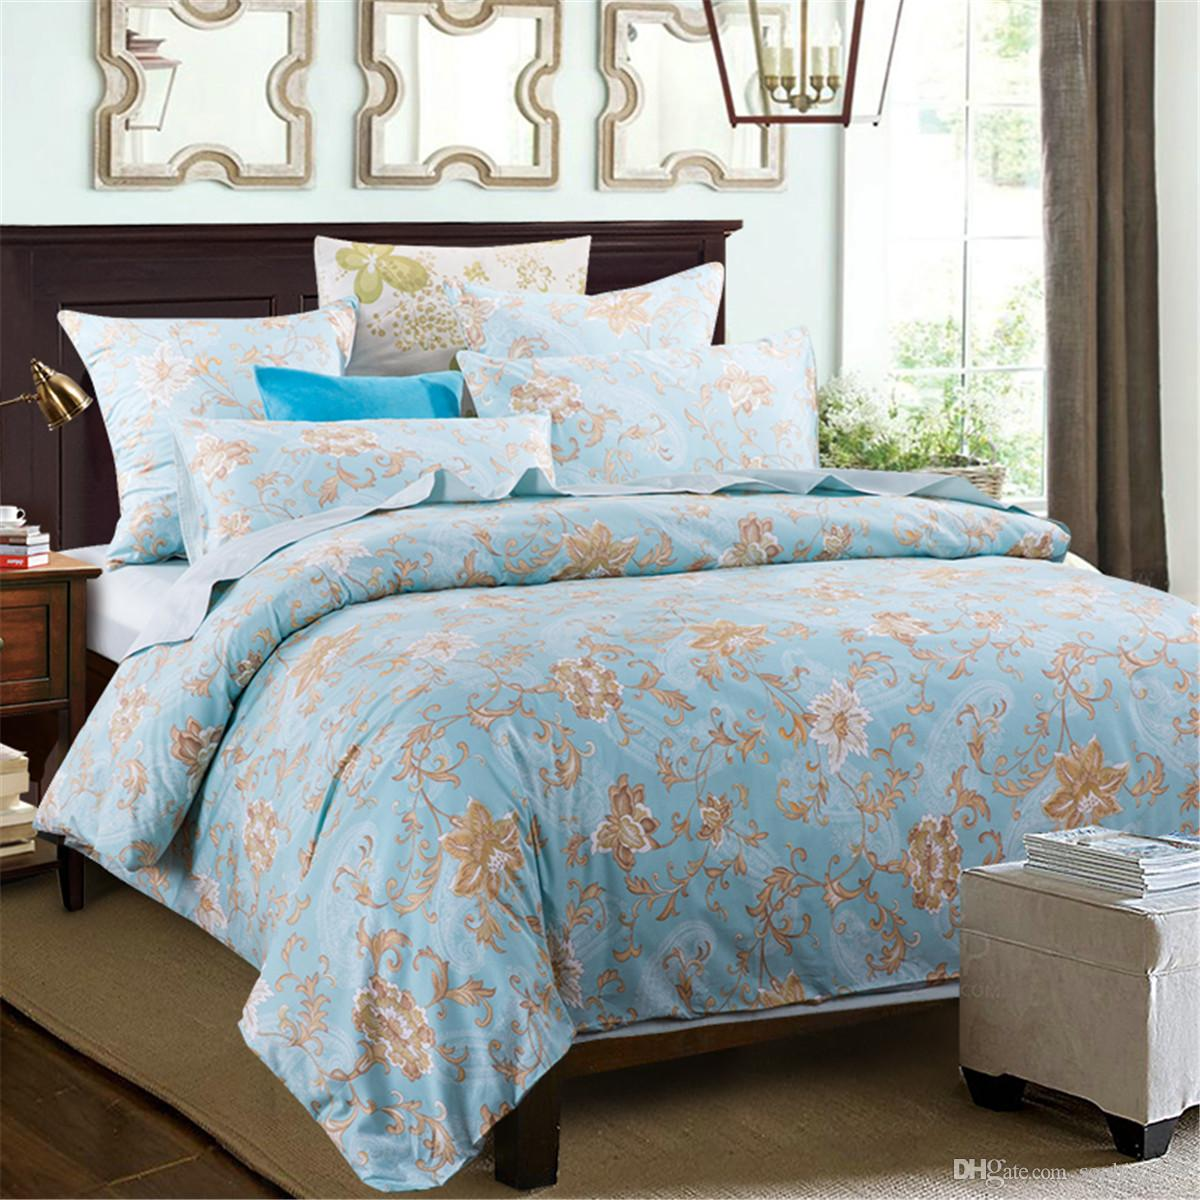 Home Textile New Classic American Country Style 100